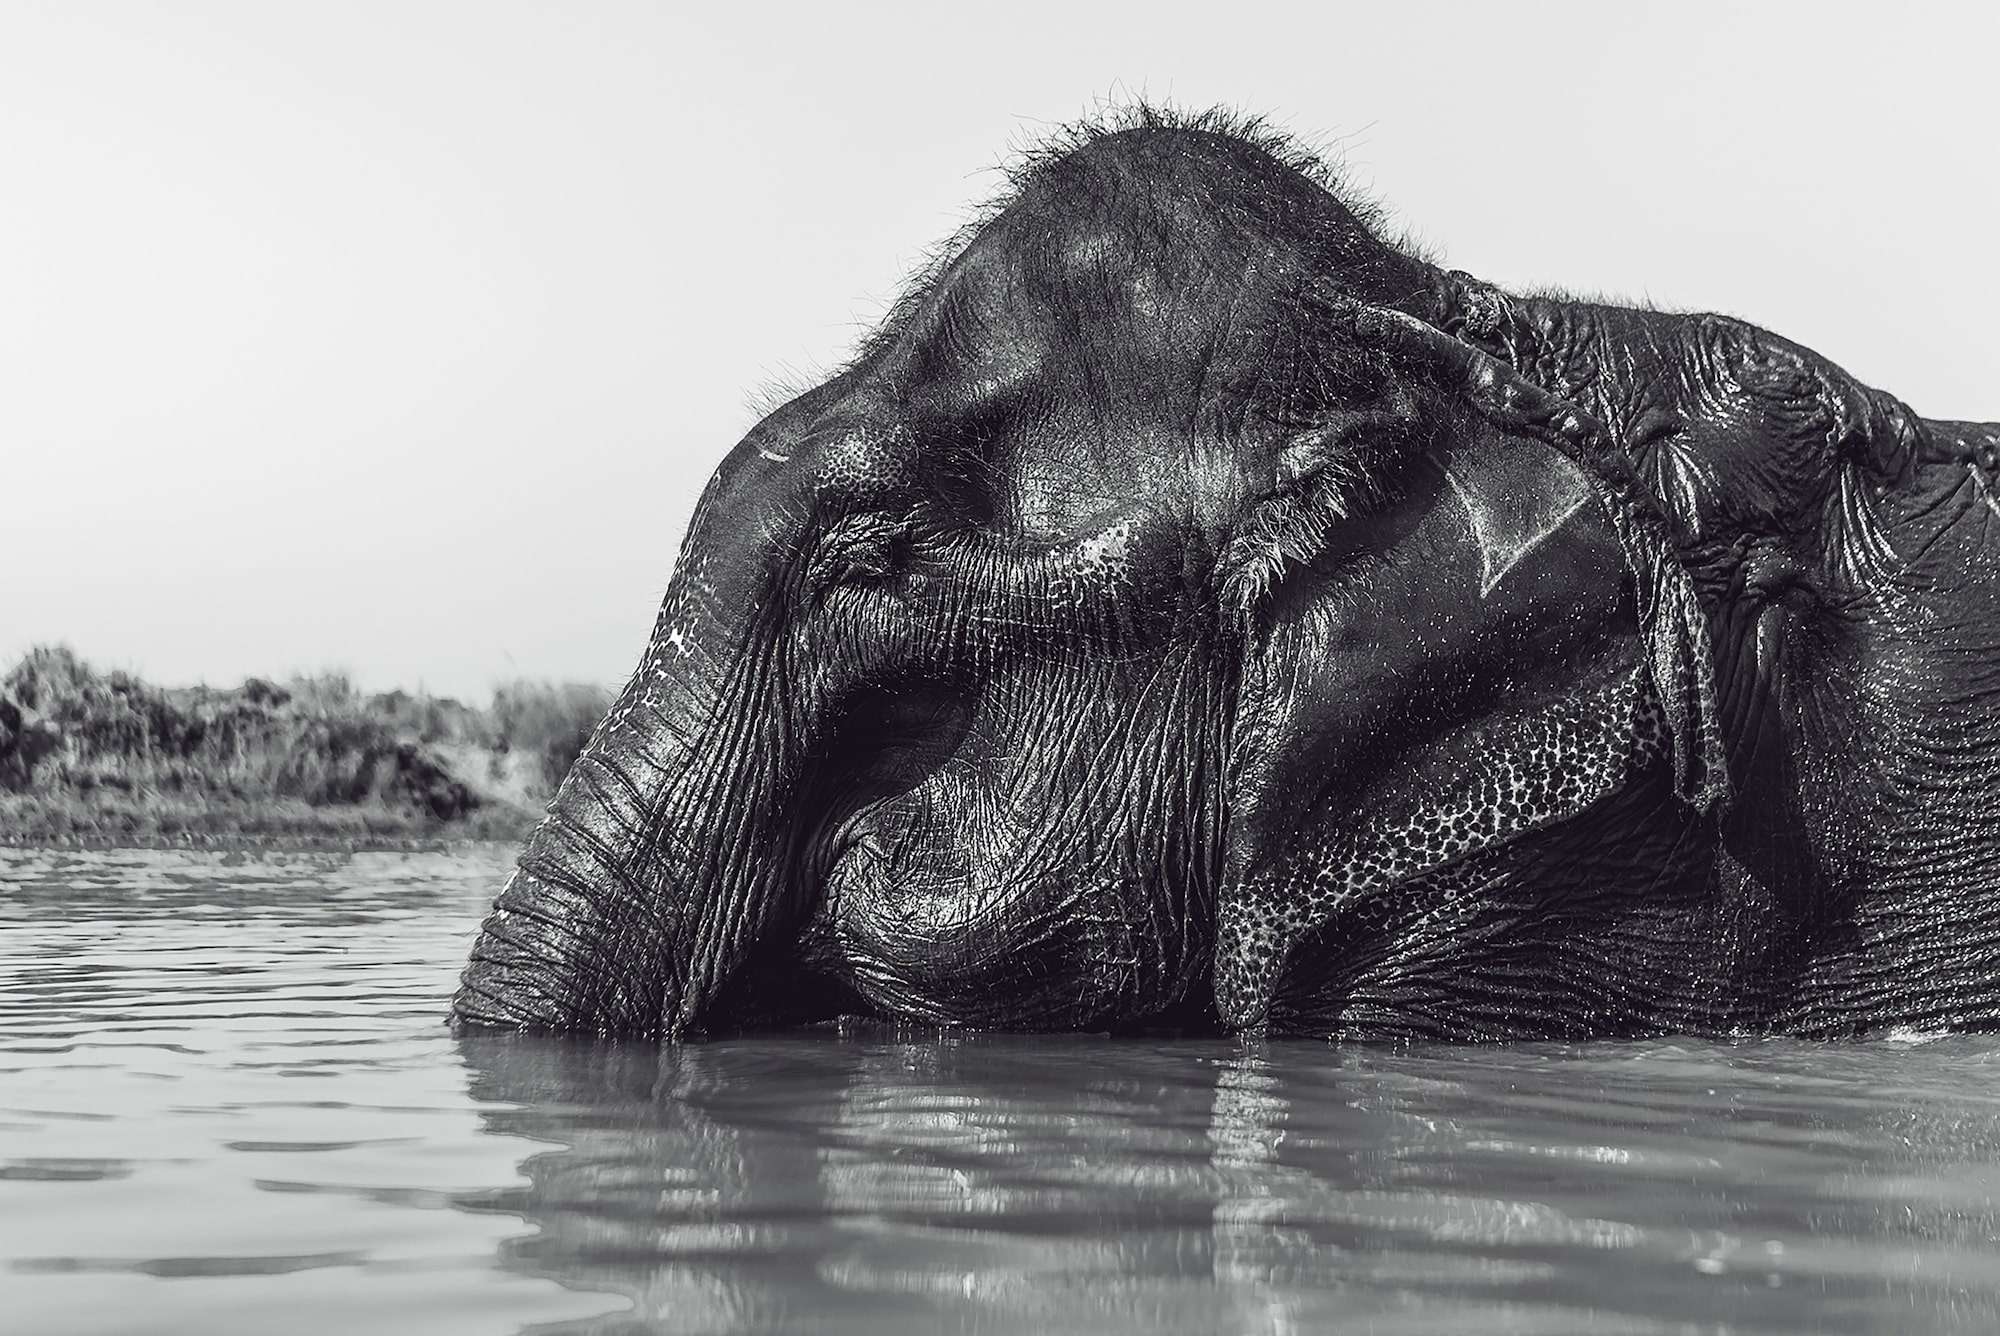 tolis fragoudis sony alpha 7SII sideway on shot of an elephant relaxing in the water